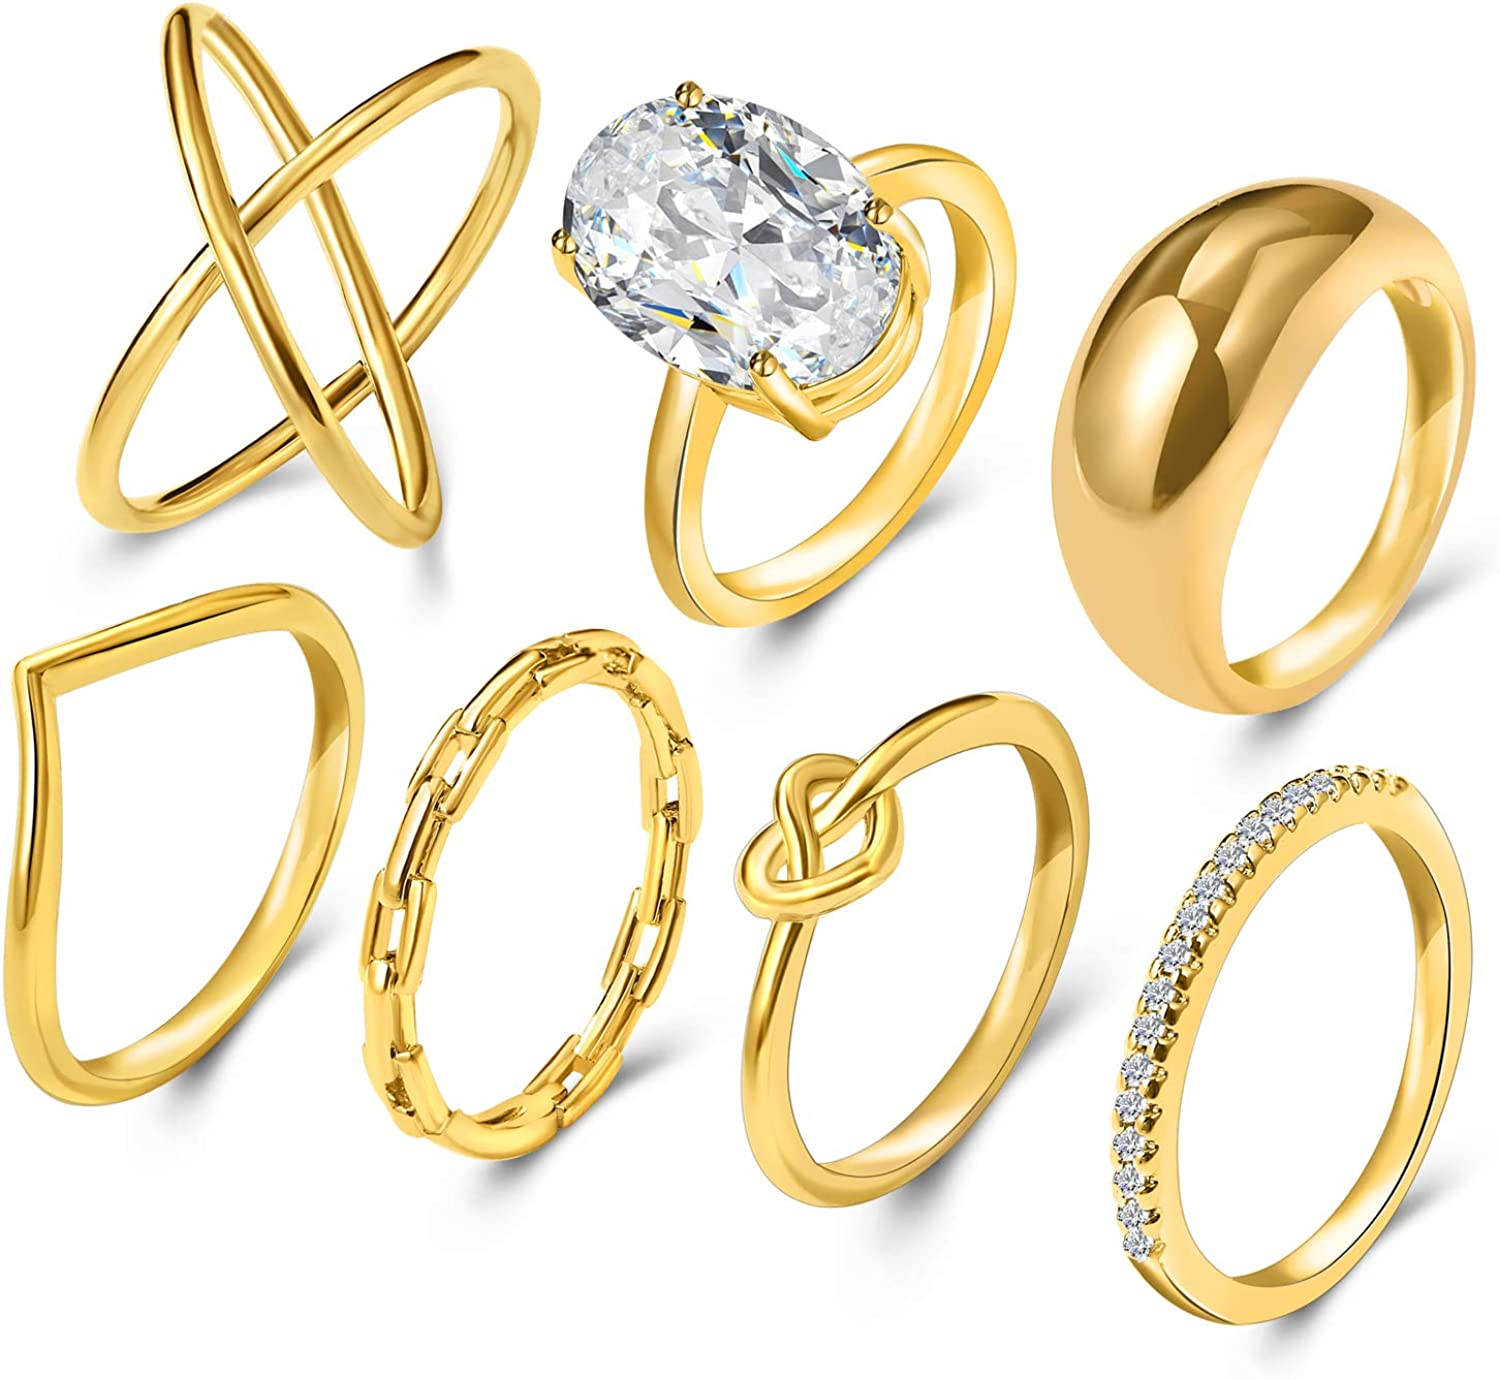 18k Gold plated ring set with cubic zirconia stones Thick chunky band ring statement ring gift for her